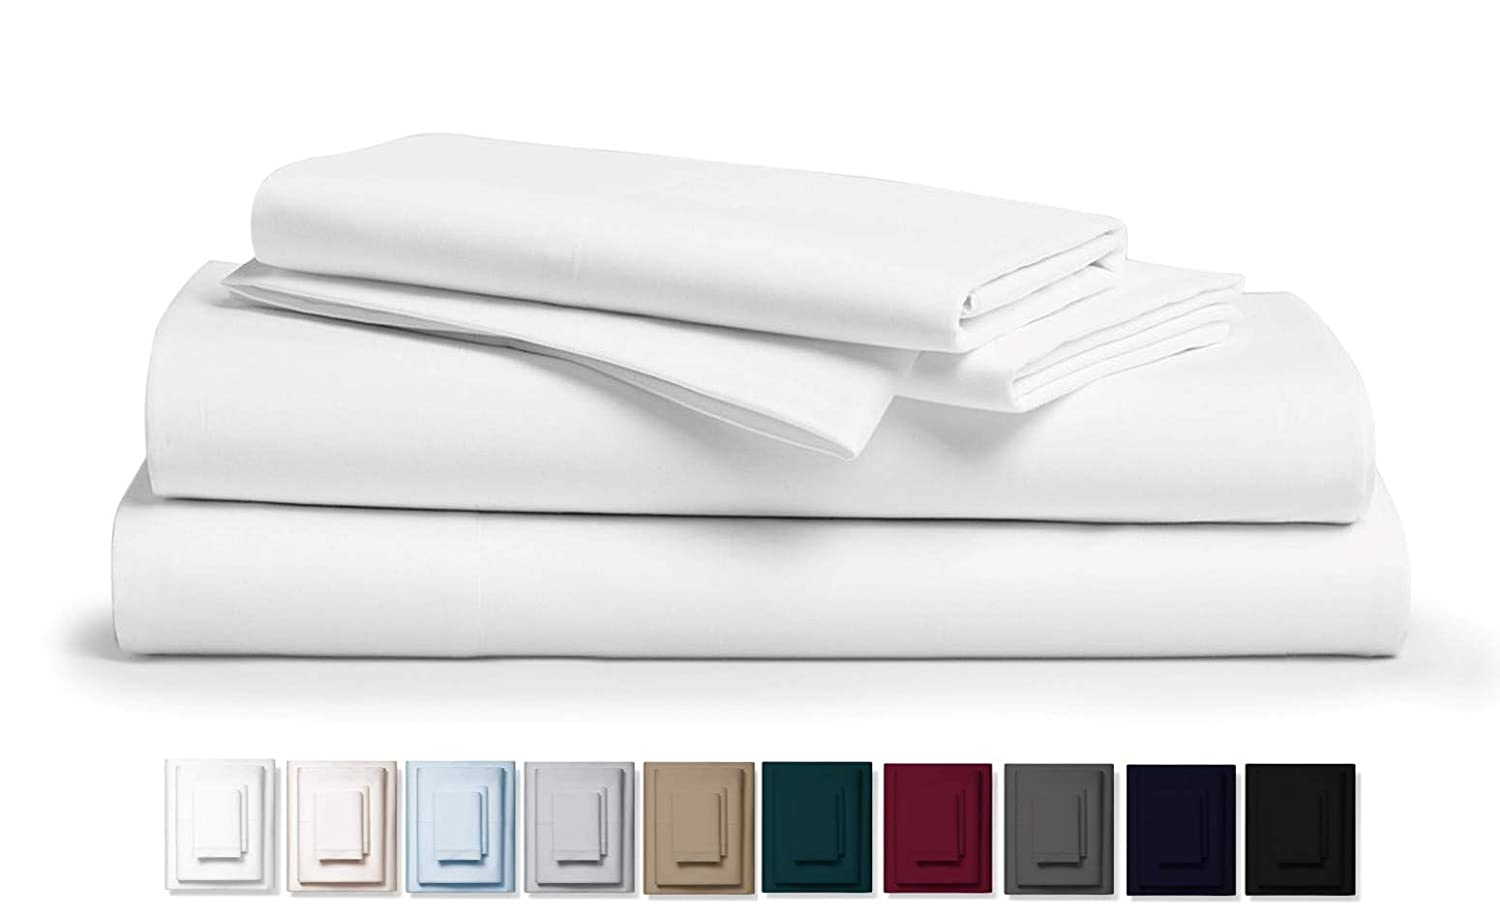 "Kemberly Home Collection 800 Thread Count 100% Pure Egyptian Cotton – Sateen Weave Premium Bed Sheets, 4- Piece White Queen- Size Luxury Sheet Set, Fits mattresses Upto 18"" deep Pocket"